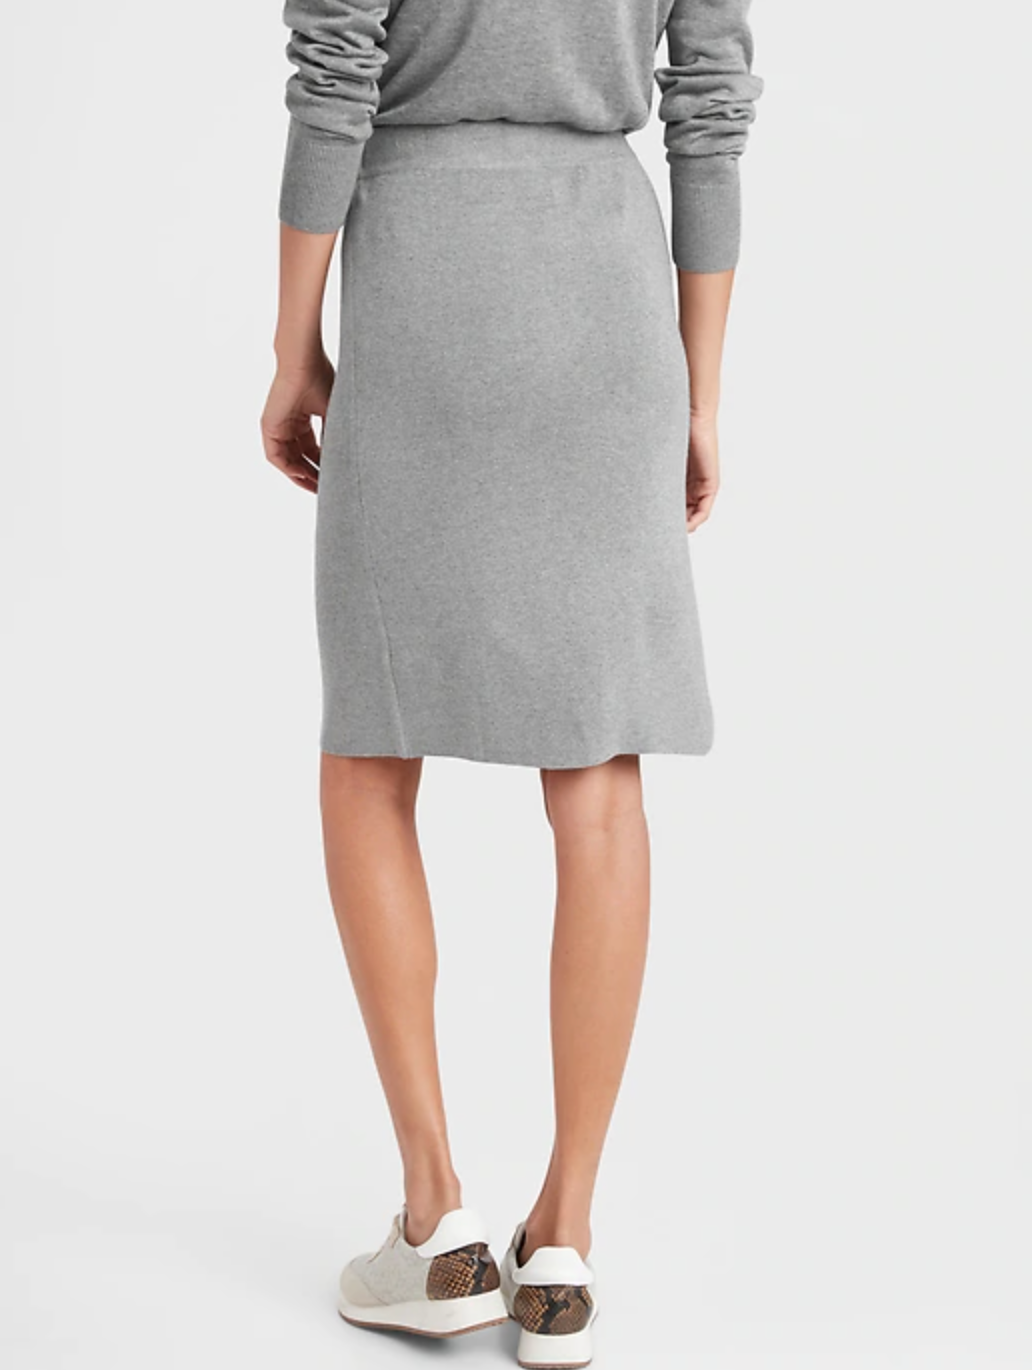 Sweater Pencil Skirt